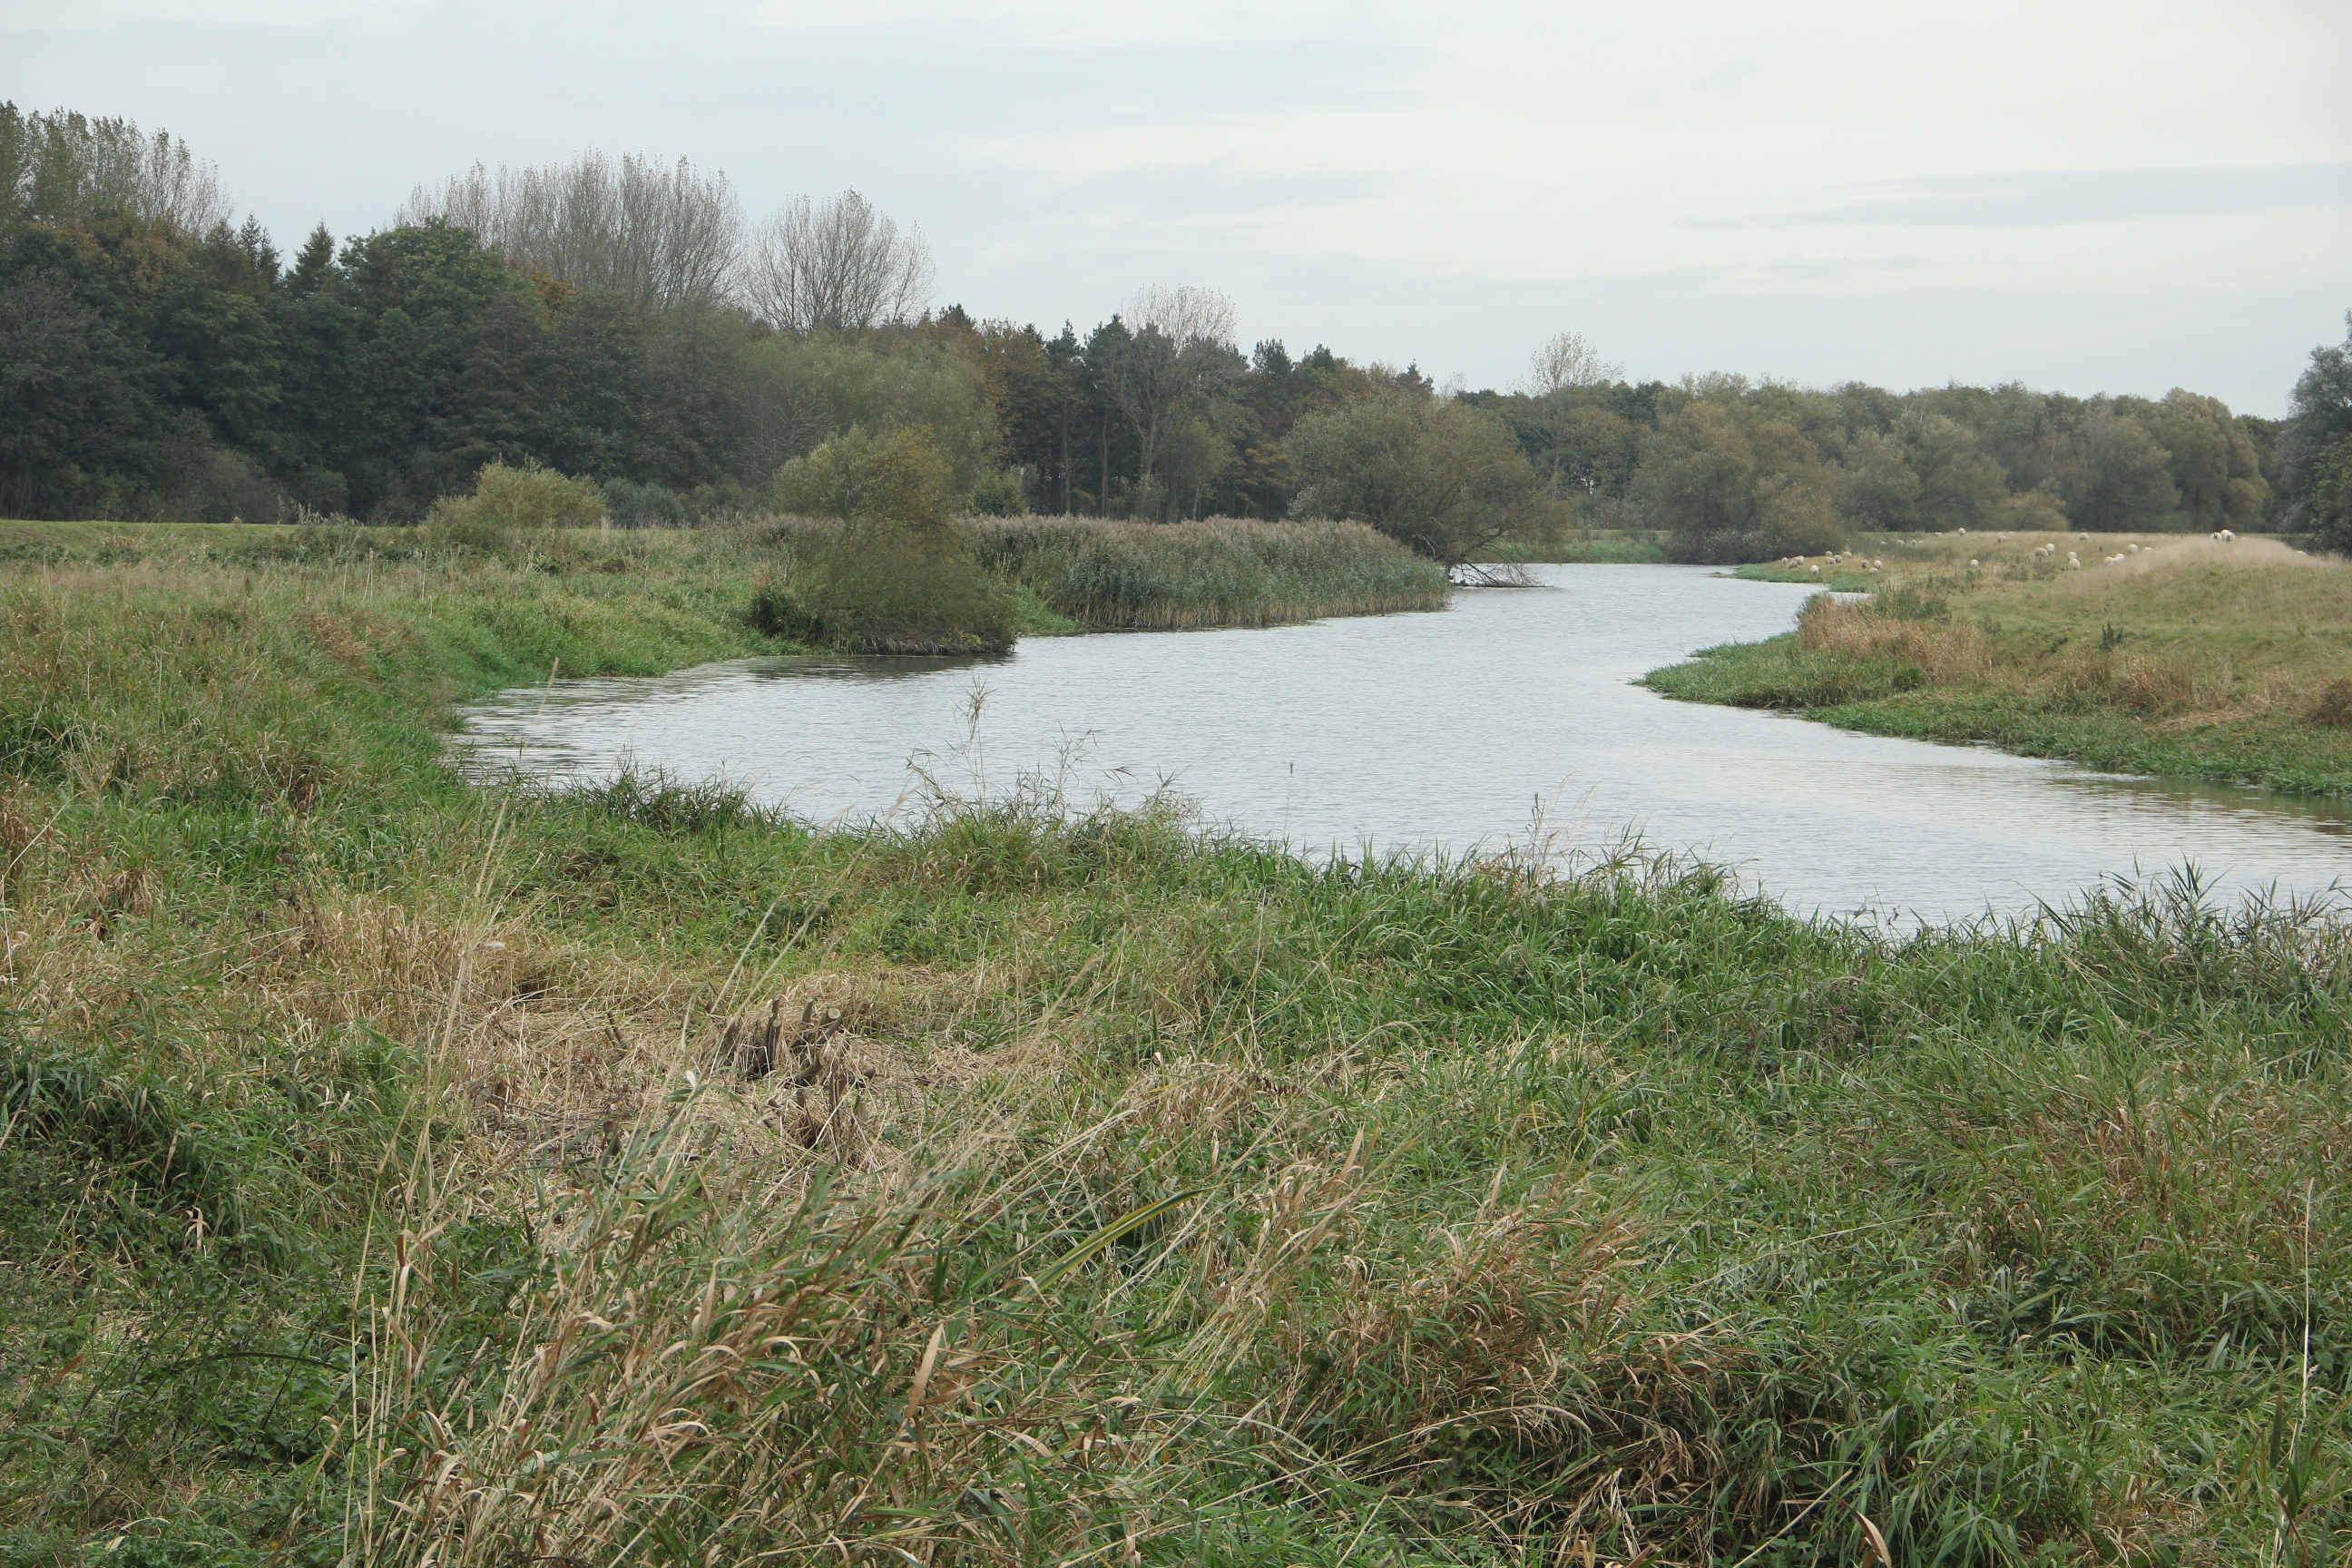 Volunteers worked on improving the natural habitat for birds and otters next to the River Hull